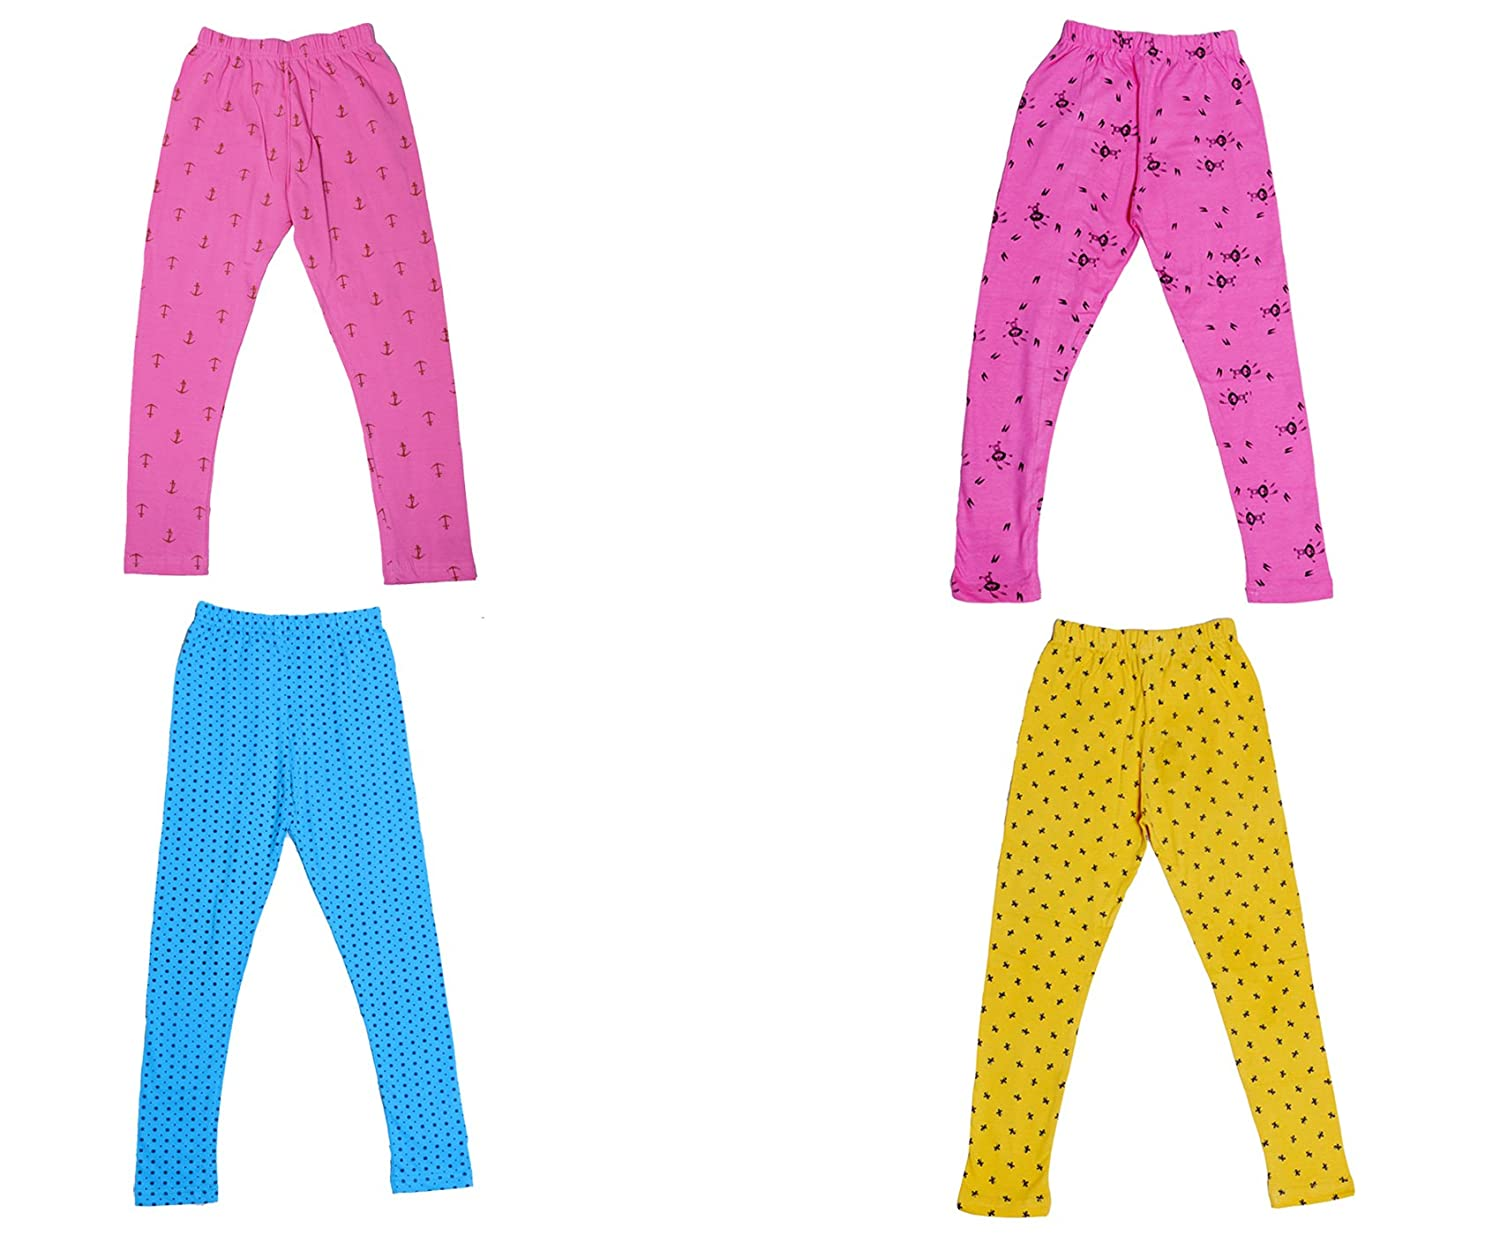 Pack of 4 Indistar Girls Super Soft and Stylish Cotton Printed Legging Pants